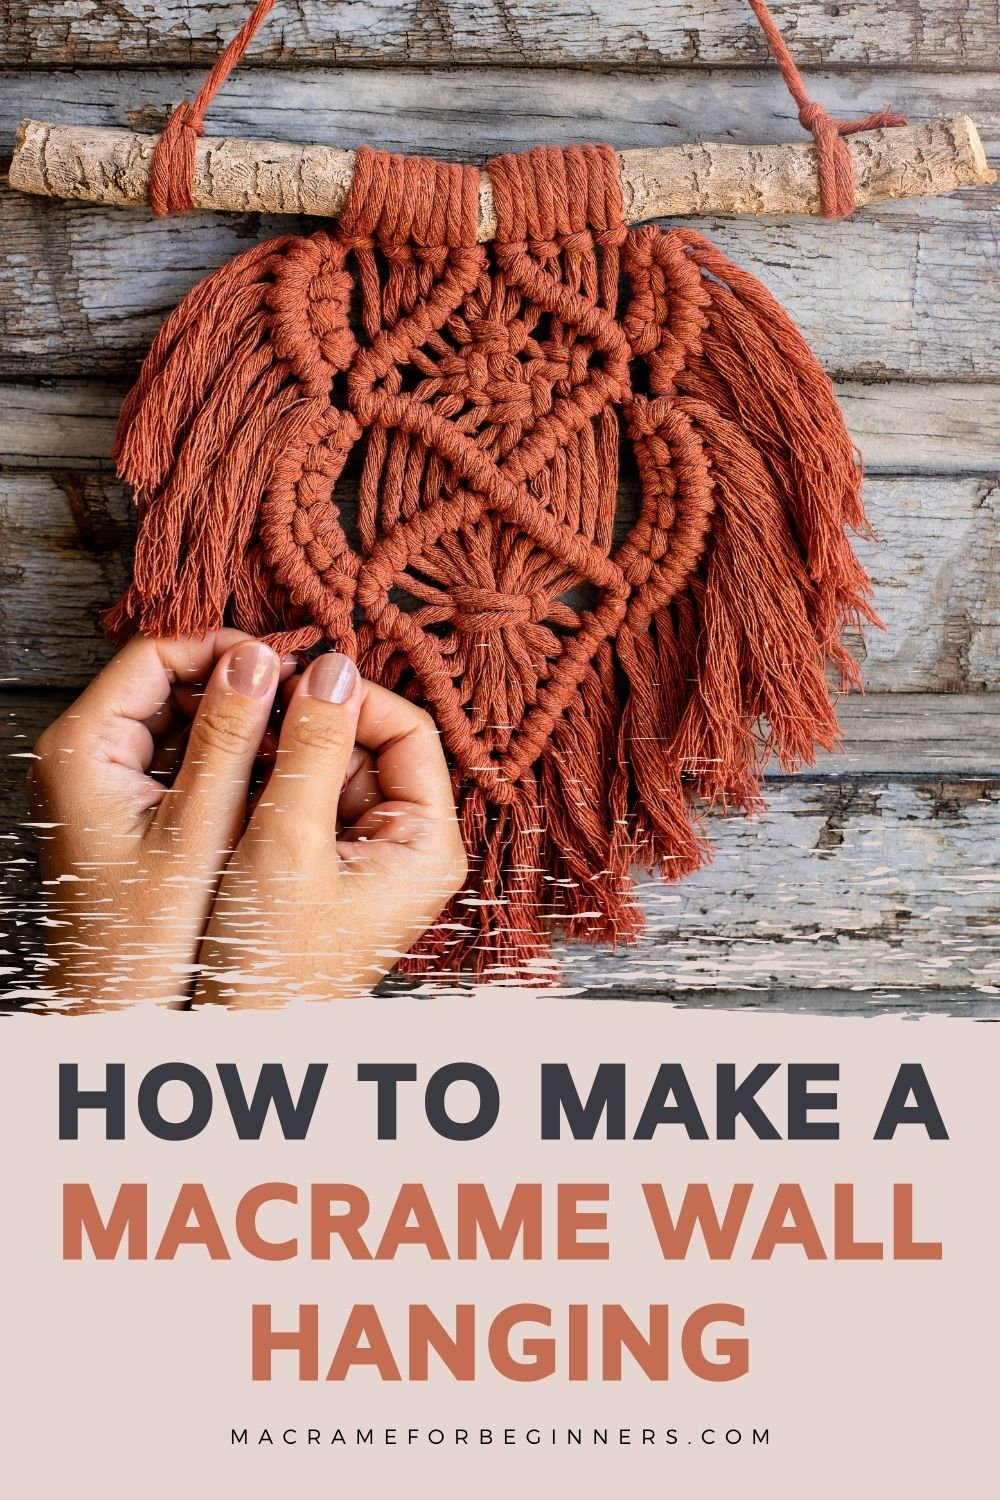 How to Make a Macrame Wall Hanging – Best Tips for Beginners